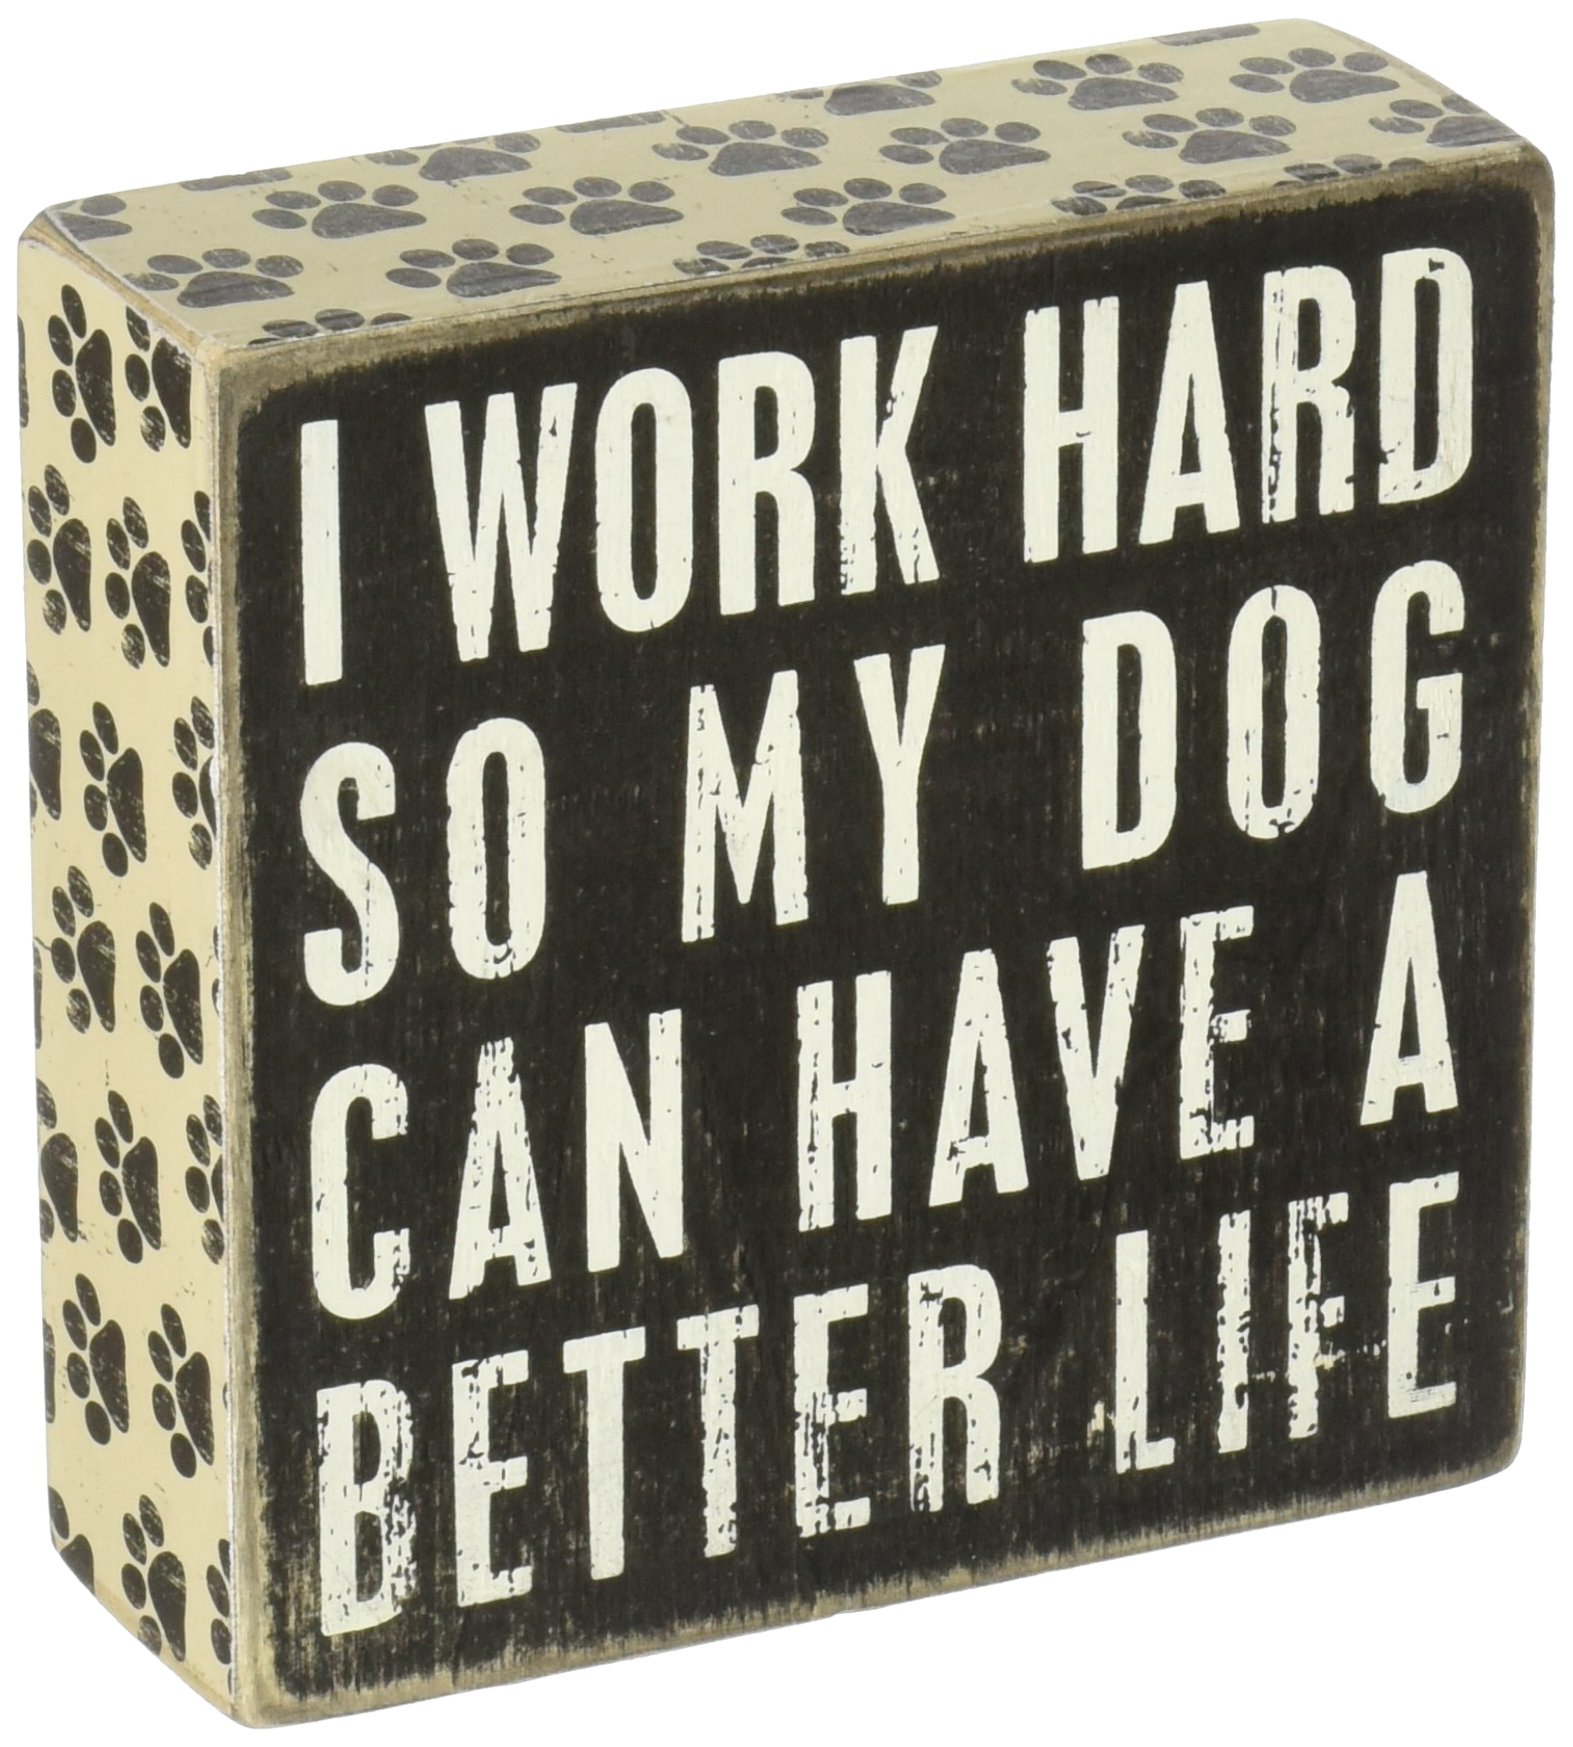 Primitives by Kathy 21490 Pawprint Trimmed Box Sign, 5″ Square, Dog Can Have a Better Life